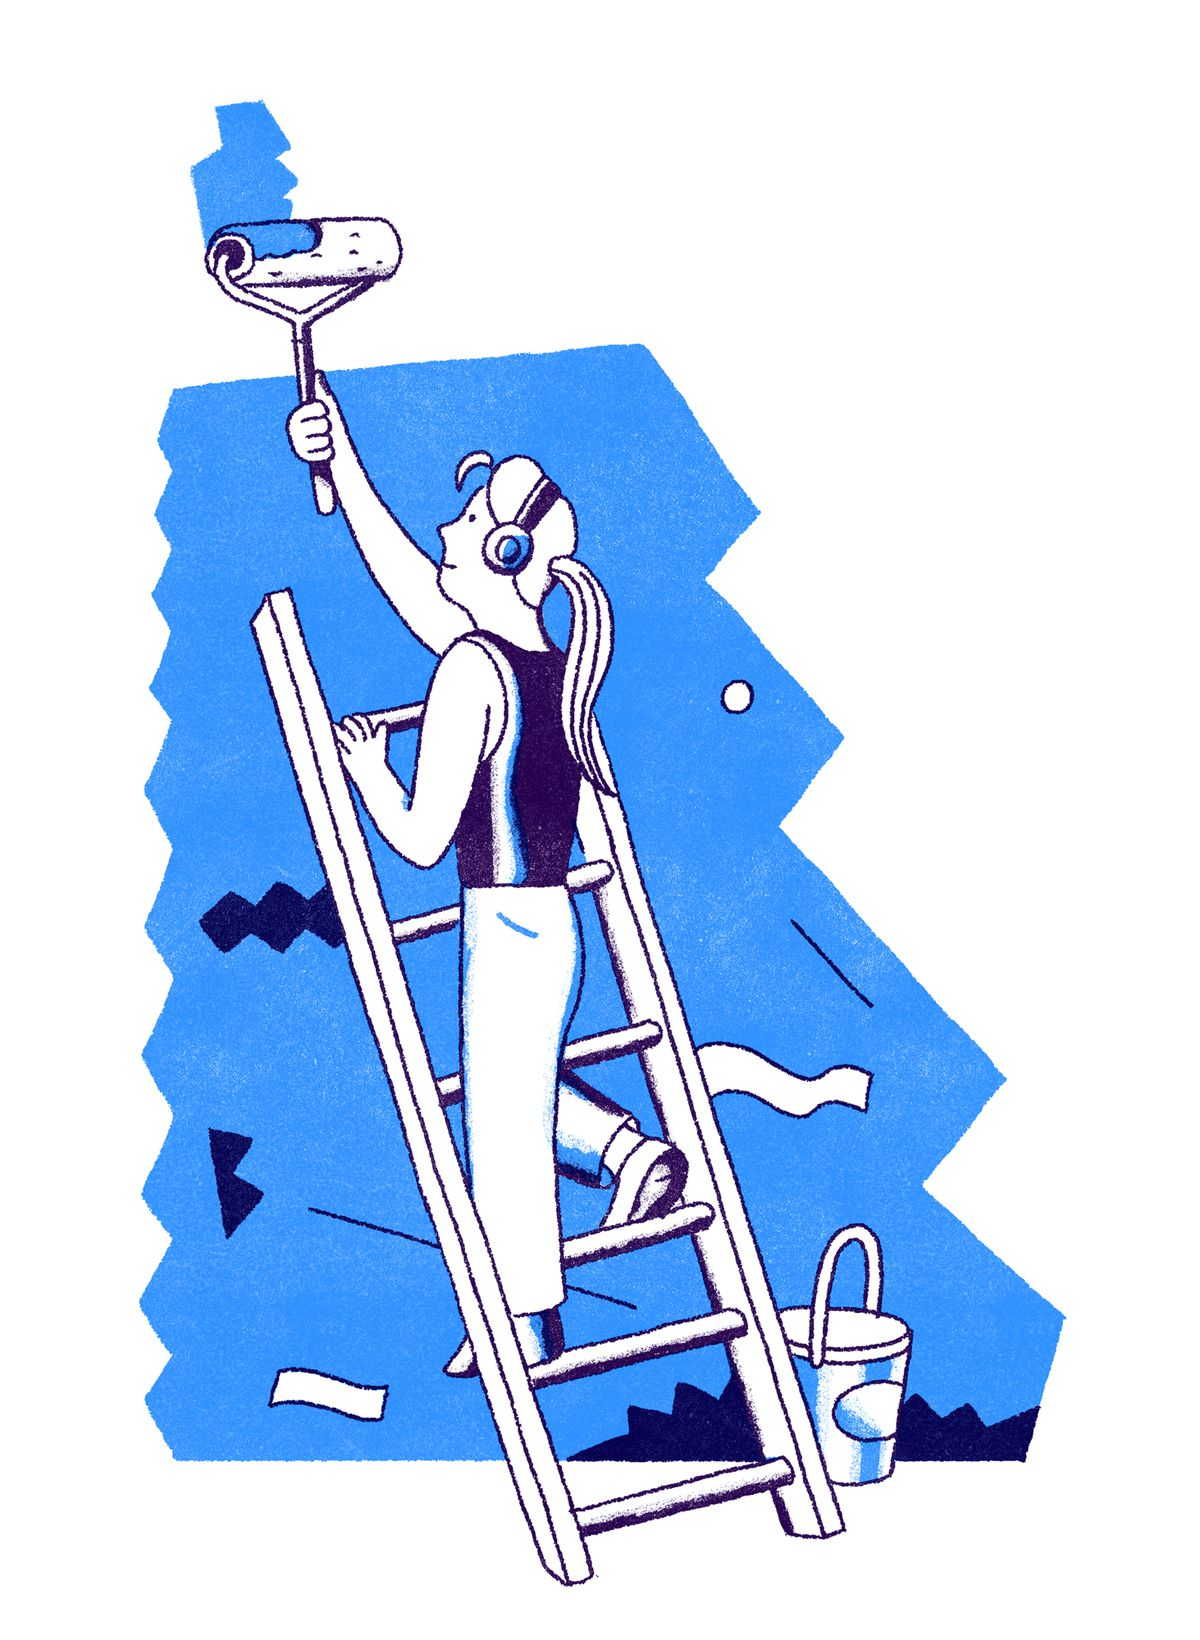 A lady with headphones on stands on a ladder happily painting a wall with a paint roller. Illustration.